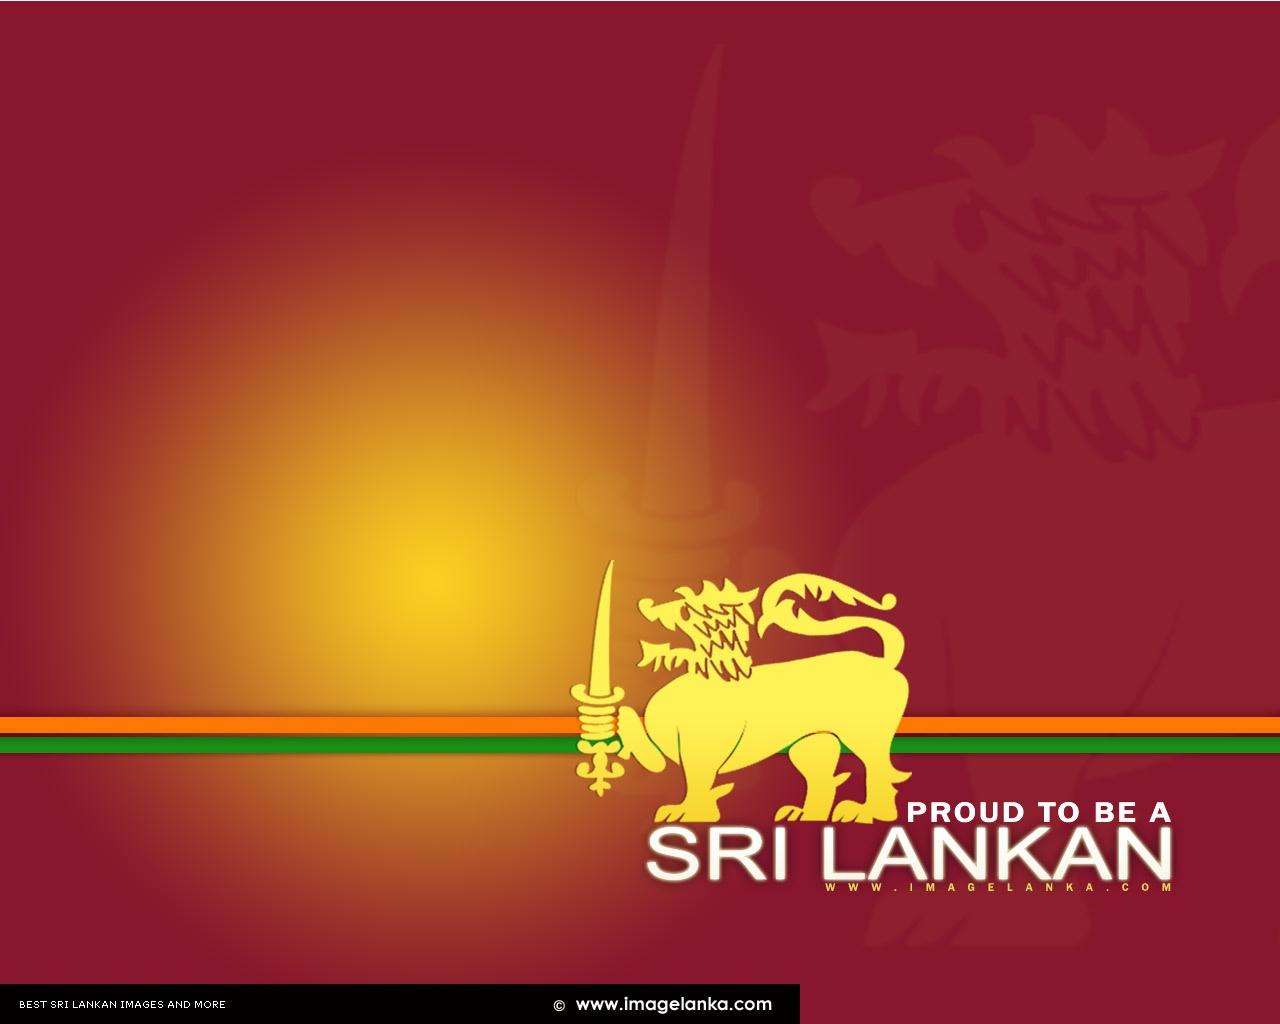 Wallpapers - Category: Wallpapers - Image: Proud to be a Sri Lankan ...